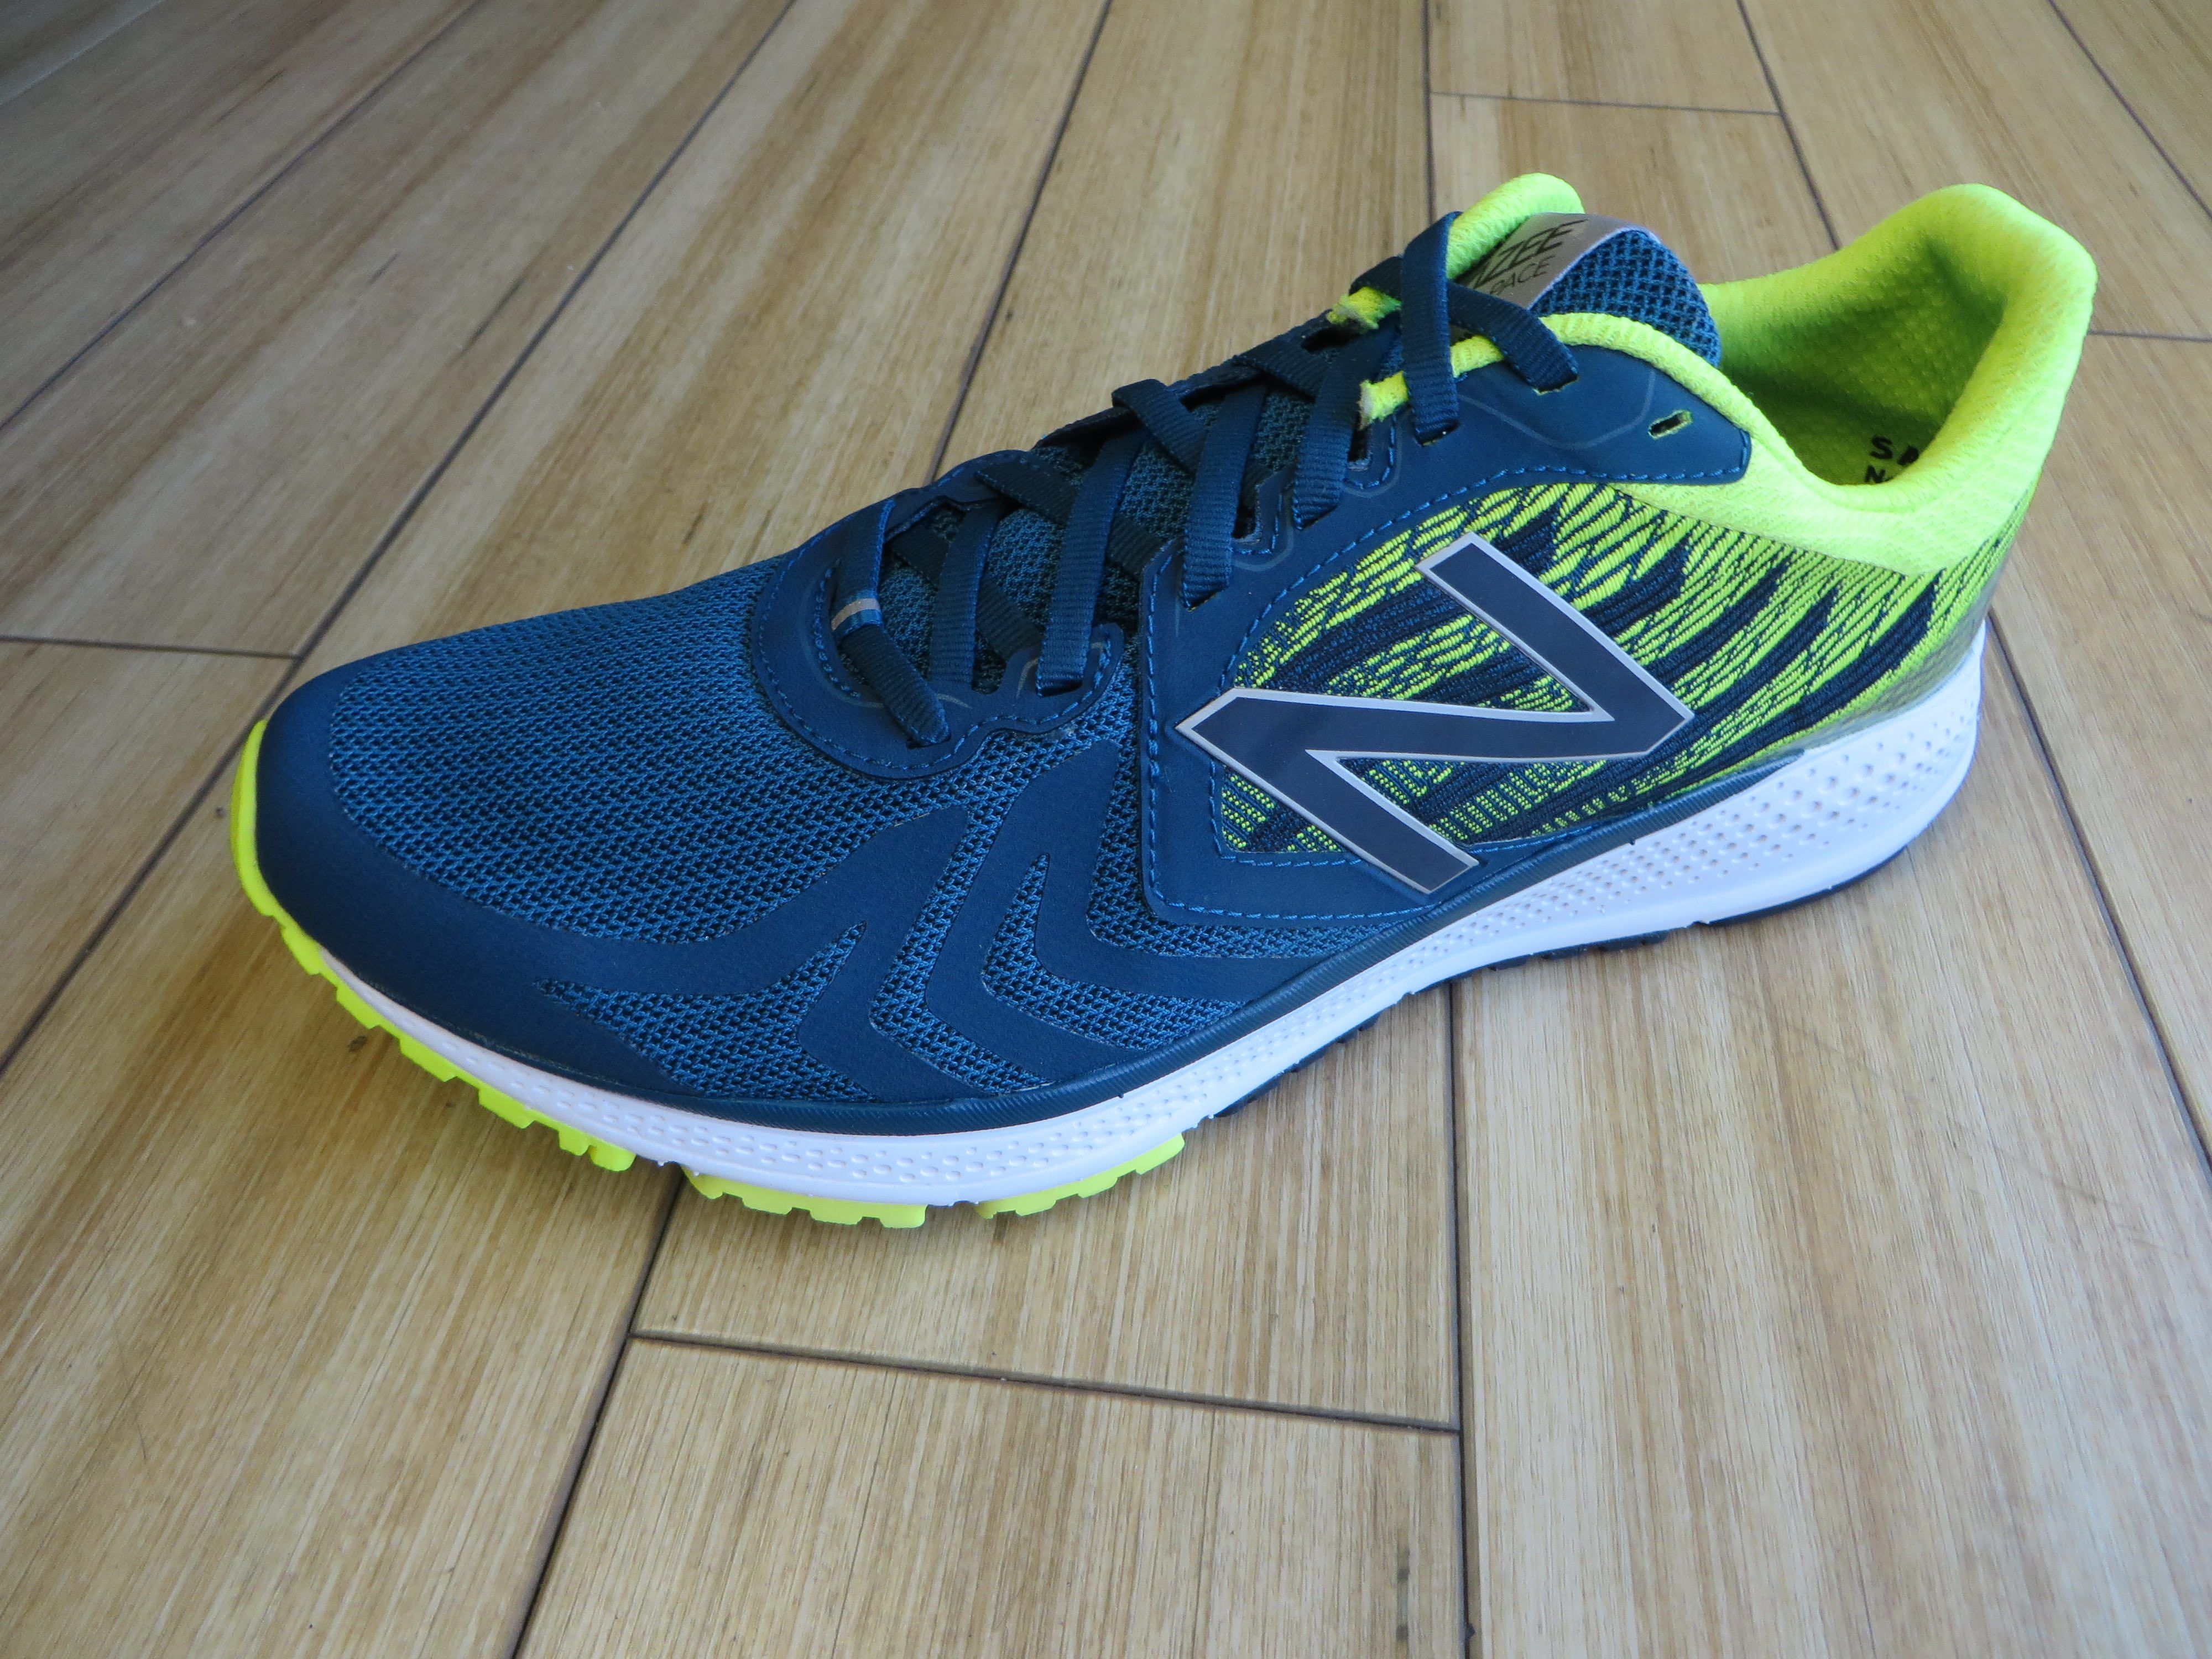 New Balance Vazee Pace v2 | Shoes | New balance, Just run, Winter ...